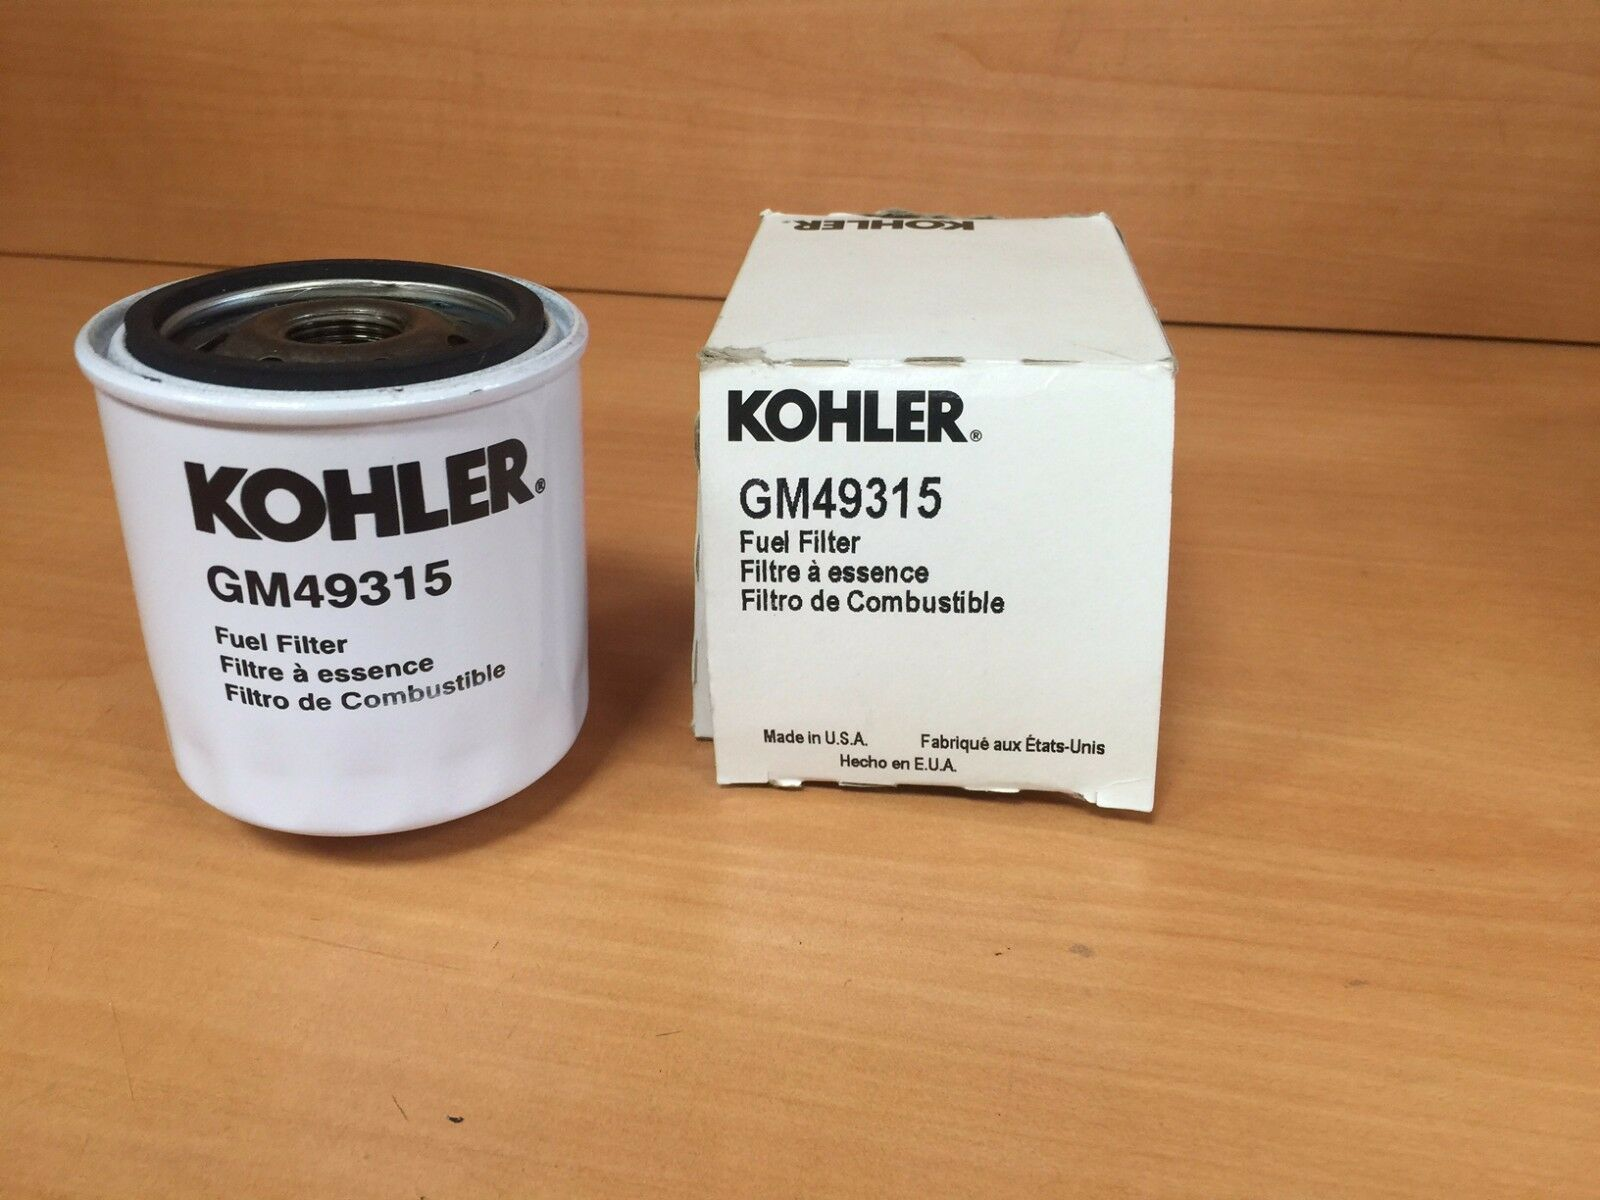 Kohler GM49315 Fuel Filter Genuine